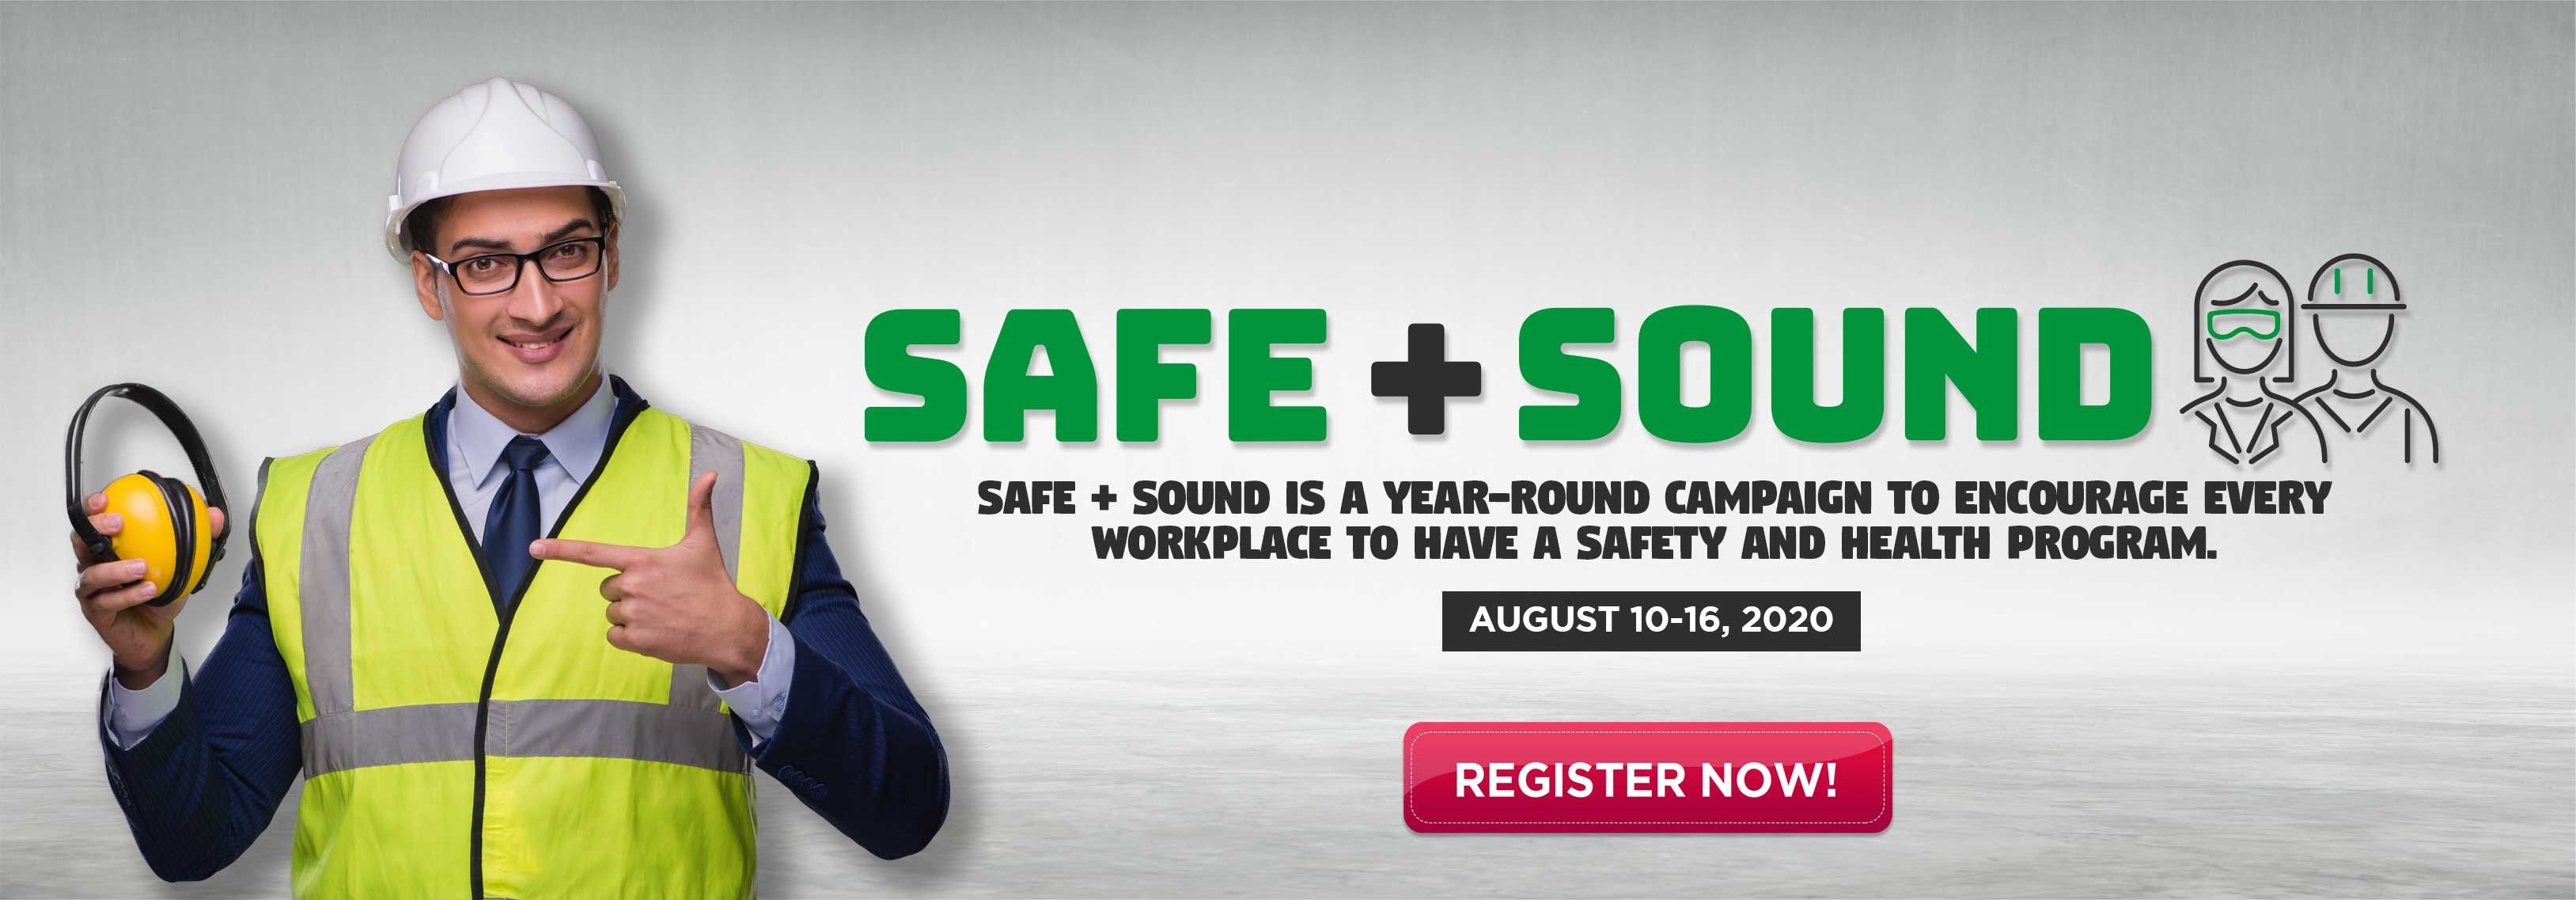 Safe + Sound Week in 2020 Workplace safety, Health and